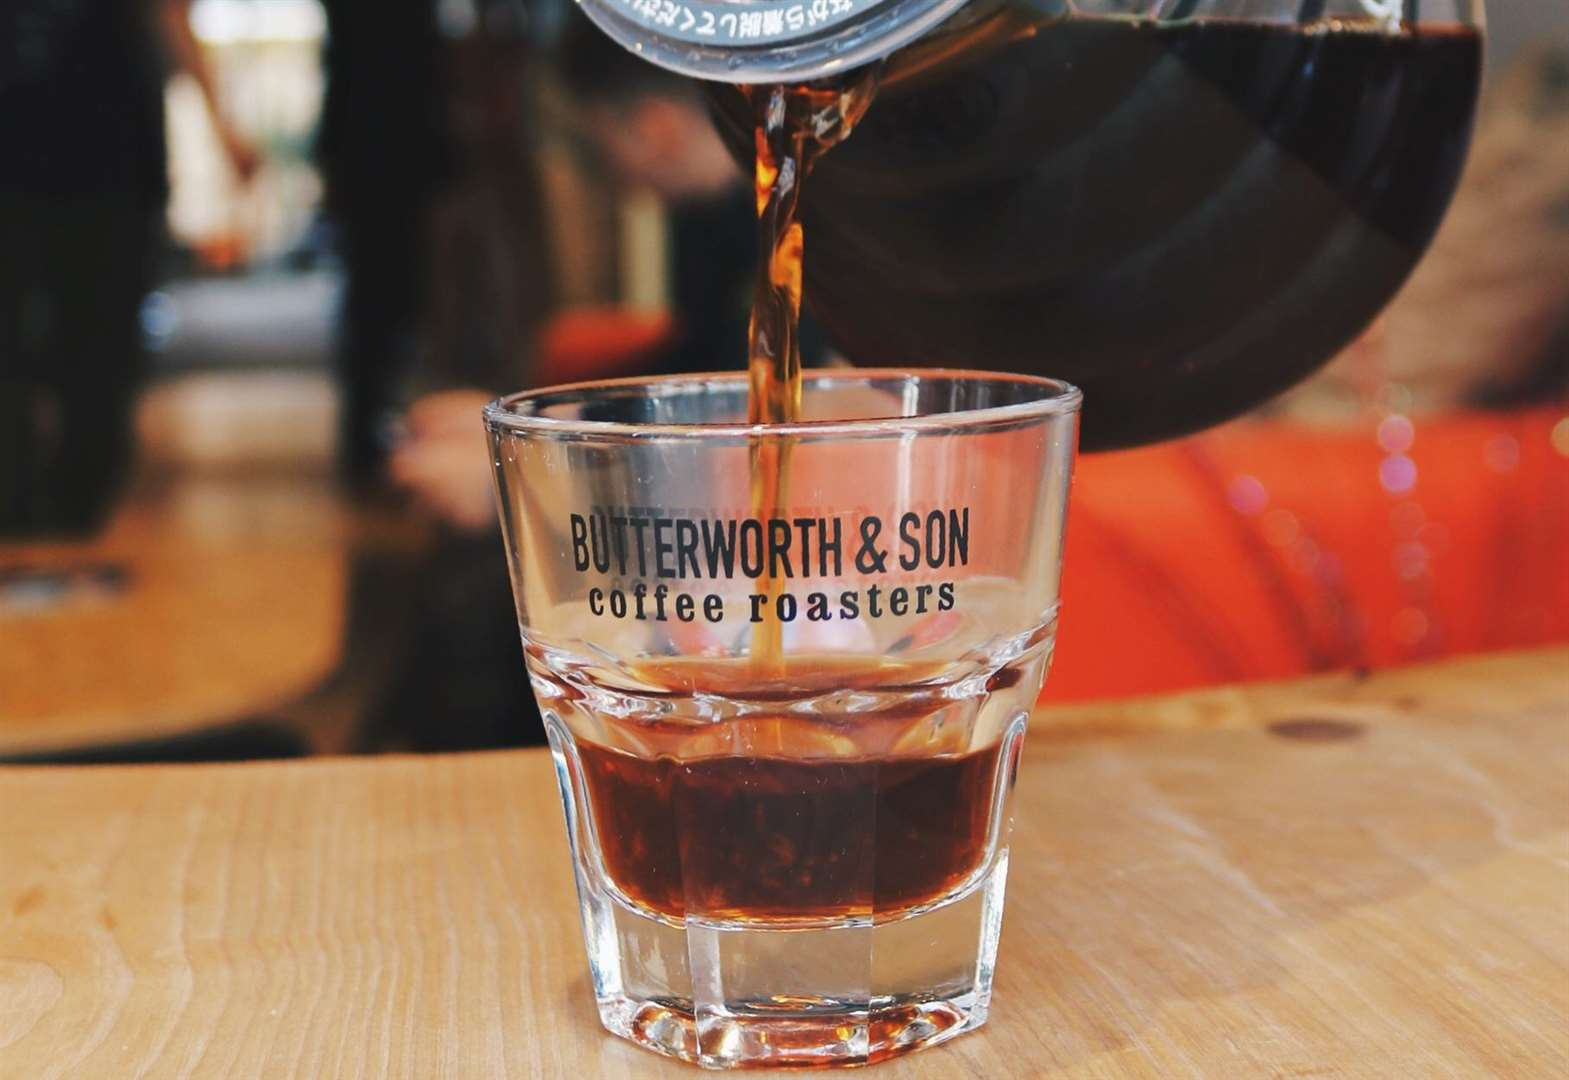 Culture: Coffee expert Rob Butterworth dives in on the subject of water